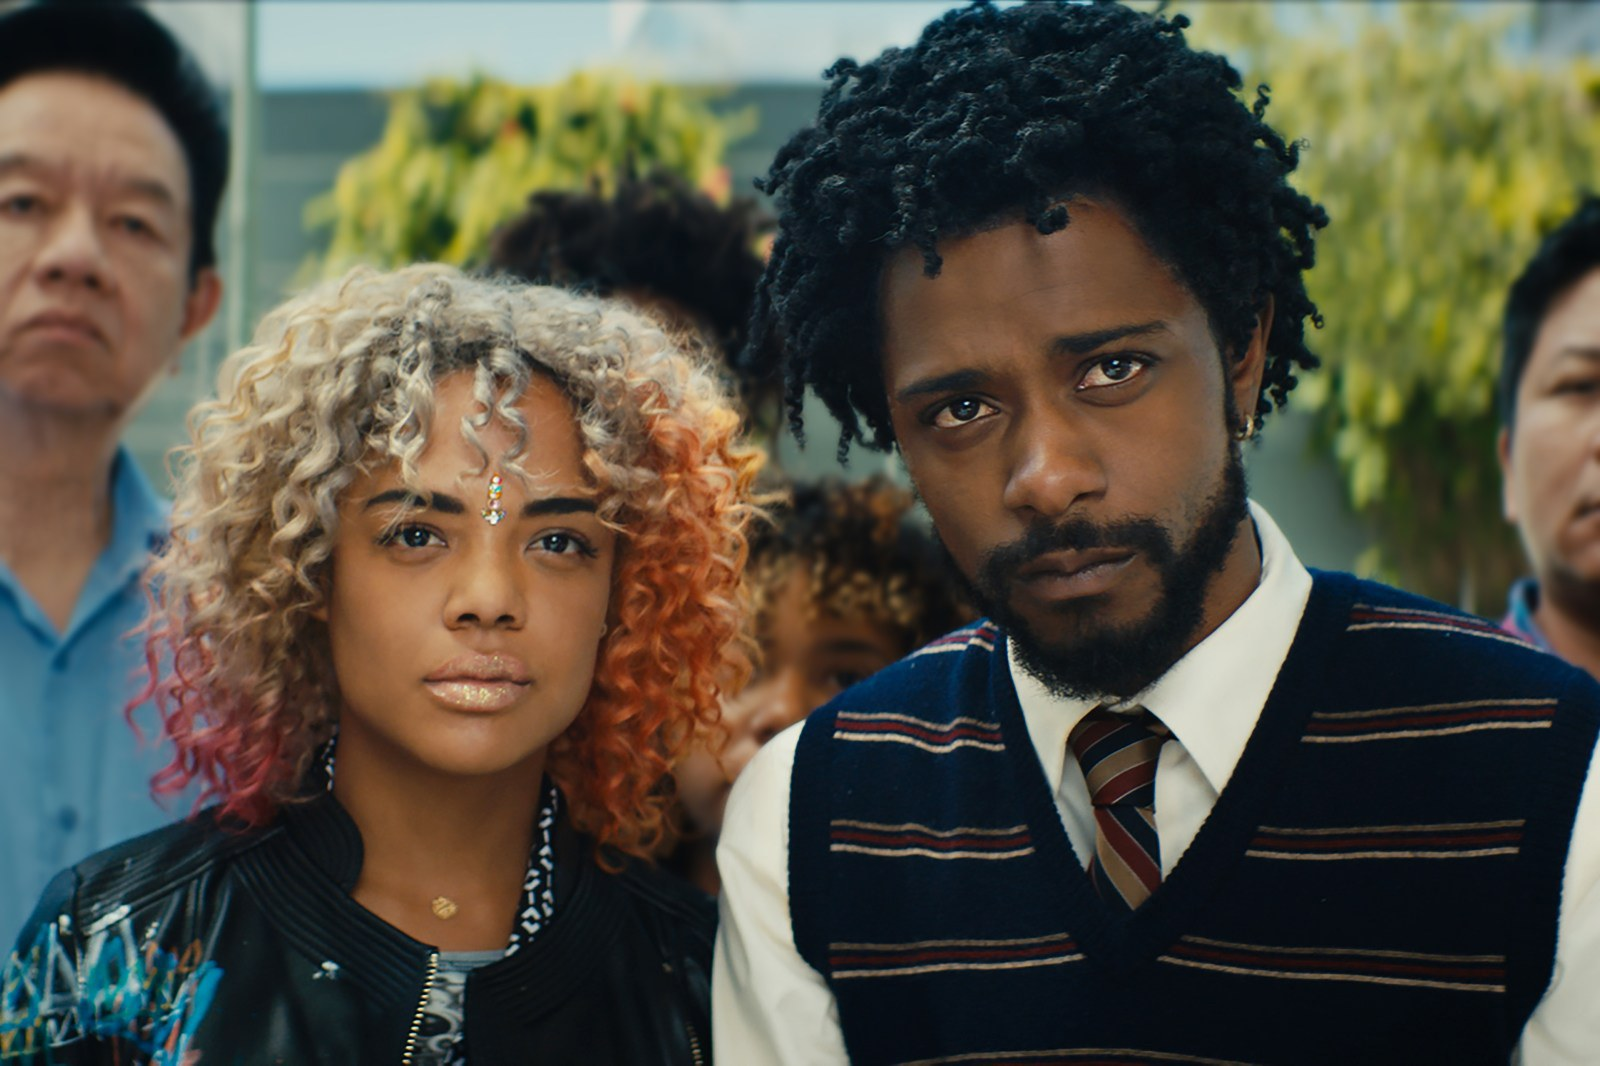 Tessa Thompson and LaKeith Stanfield in the film.